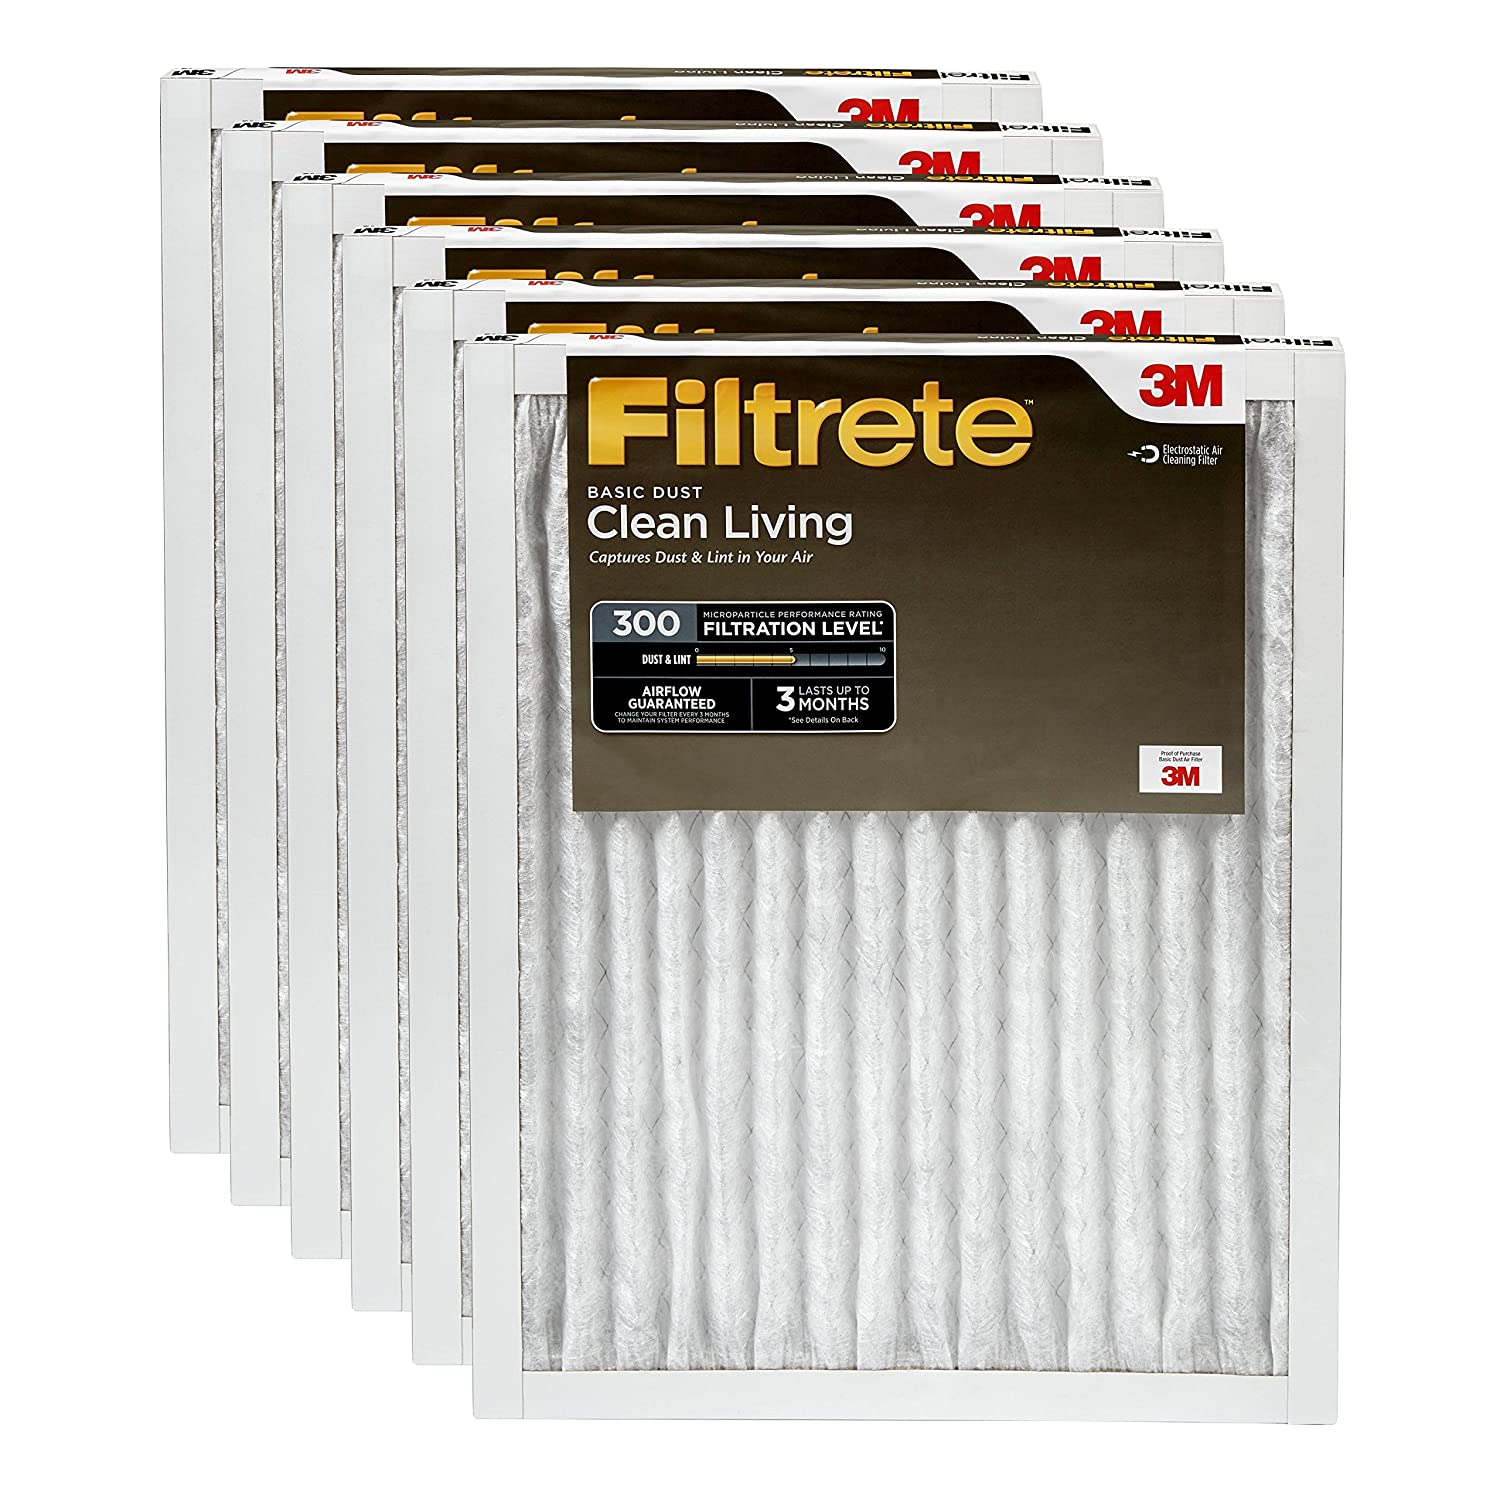 1. Filtrete 14x24x1, AC Furnace Air Filter, MPR 300, Clean Living Basic Dust, 6-Pack